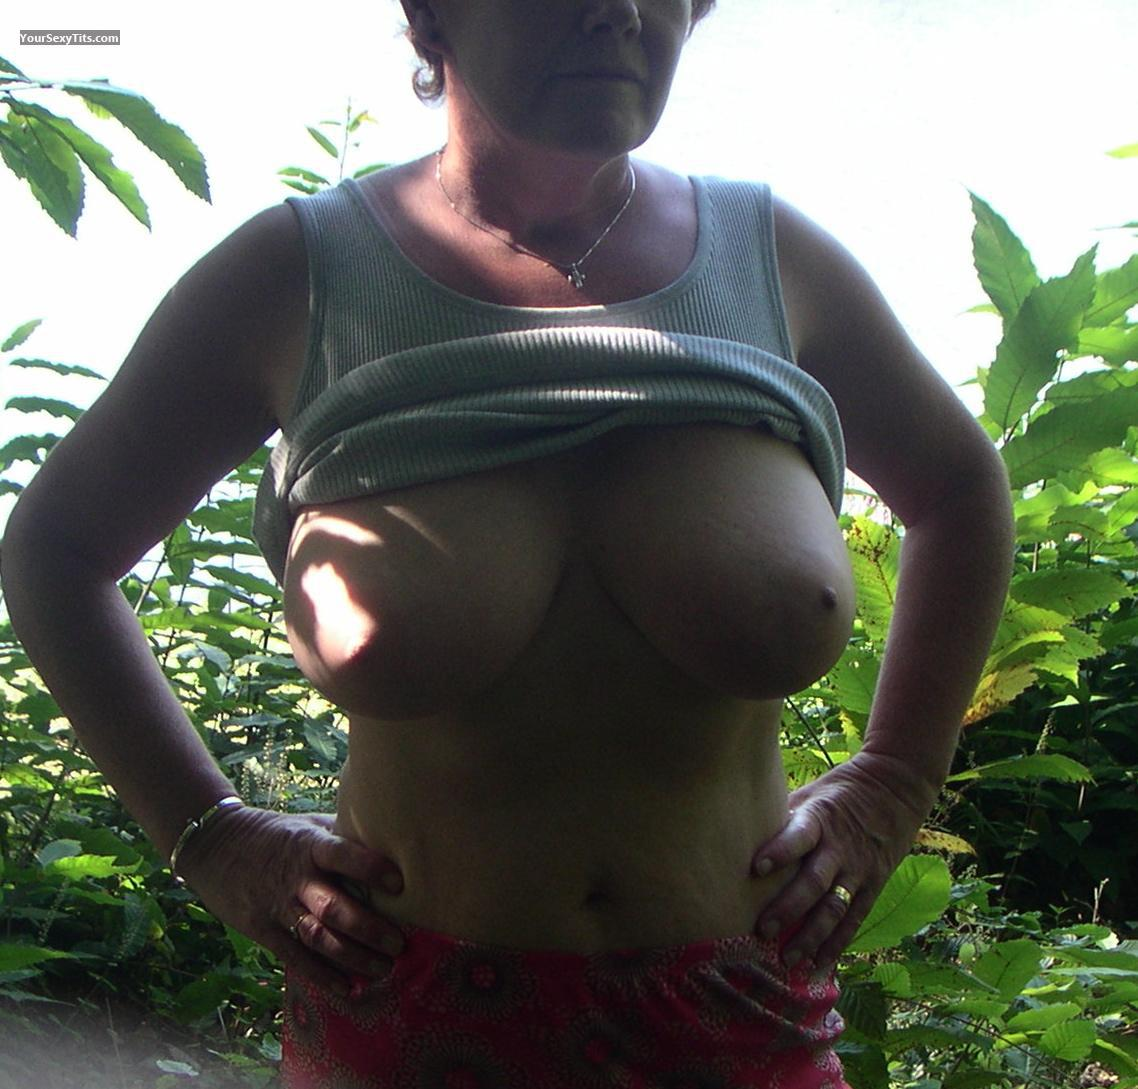 Tit Flash: Medium Tits - Jean from United Kingdom